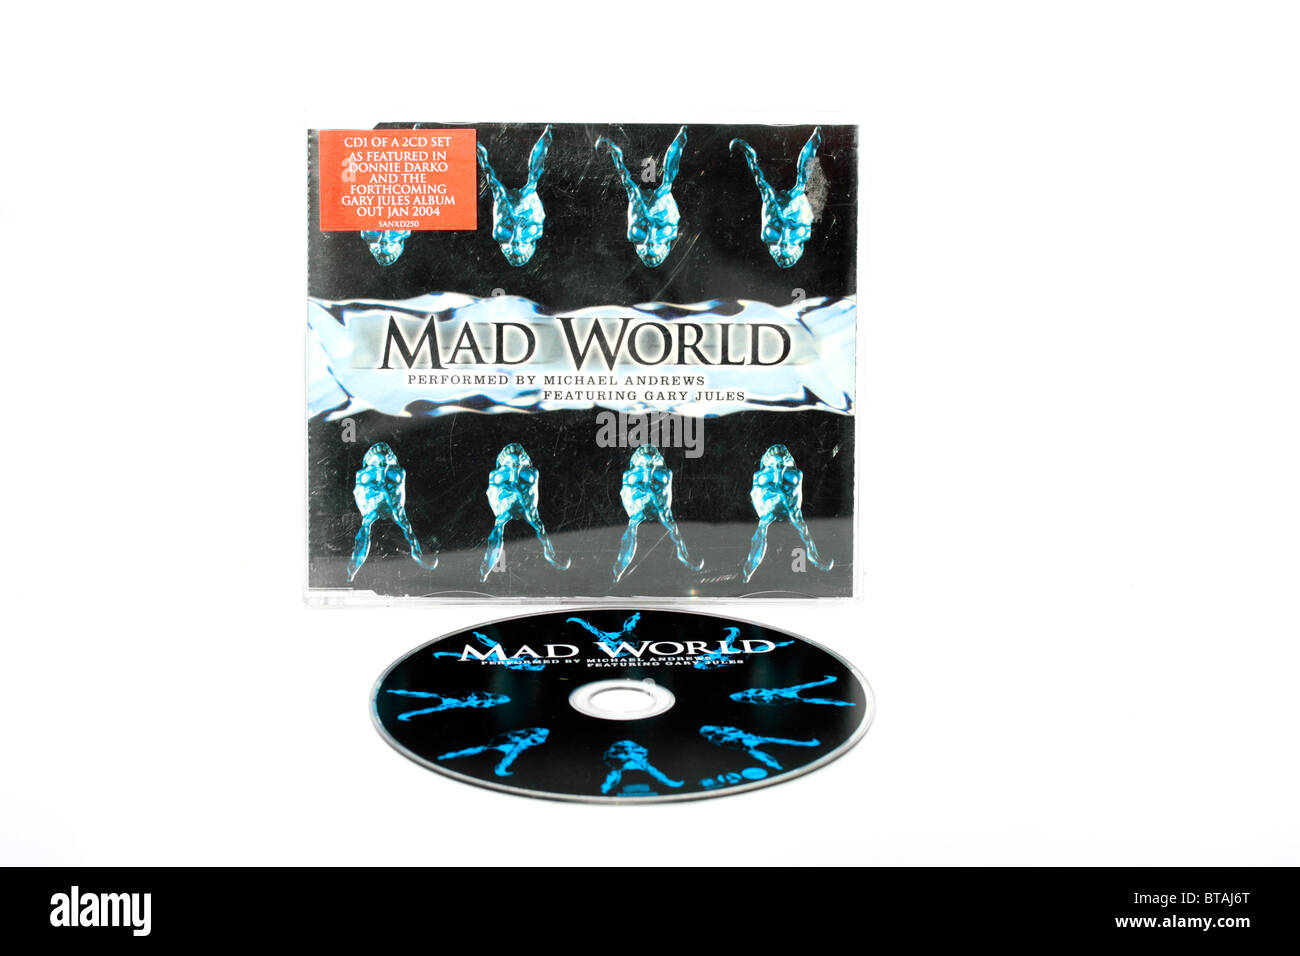 Mad World performed by Michael Andrews and